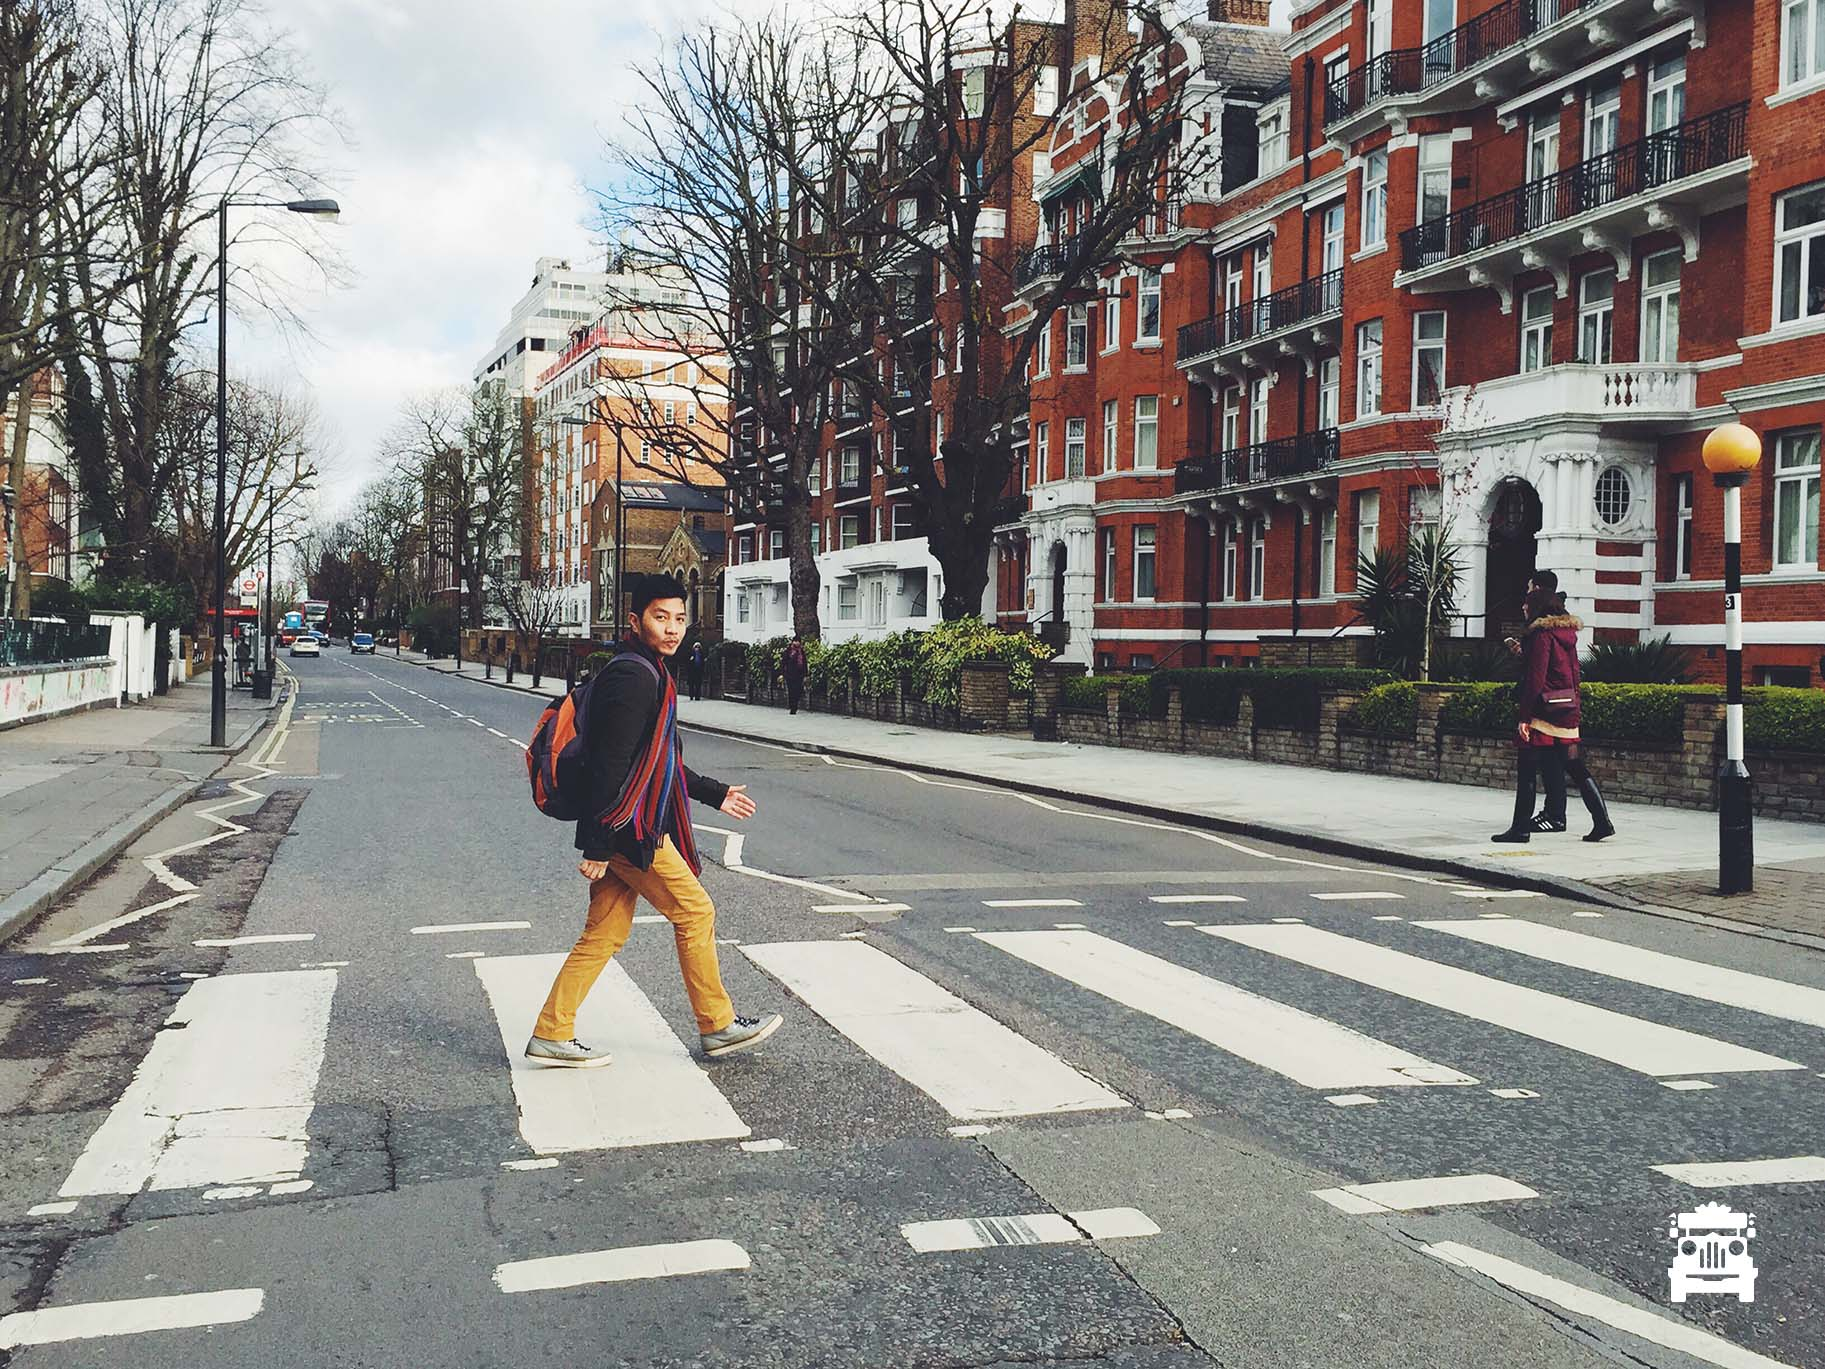 First attempt at crossing Abbey Road